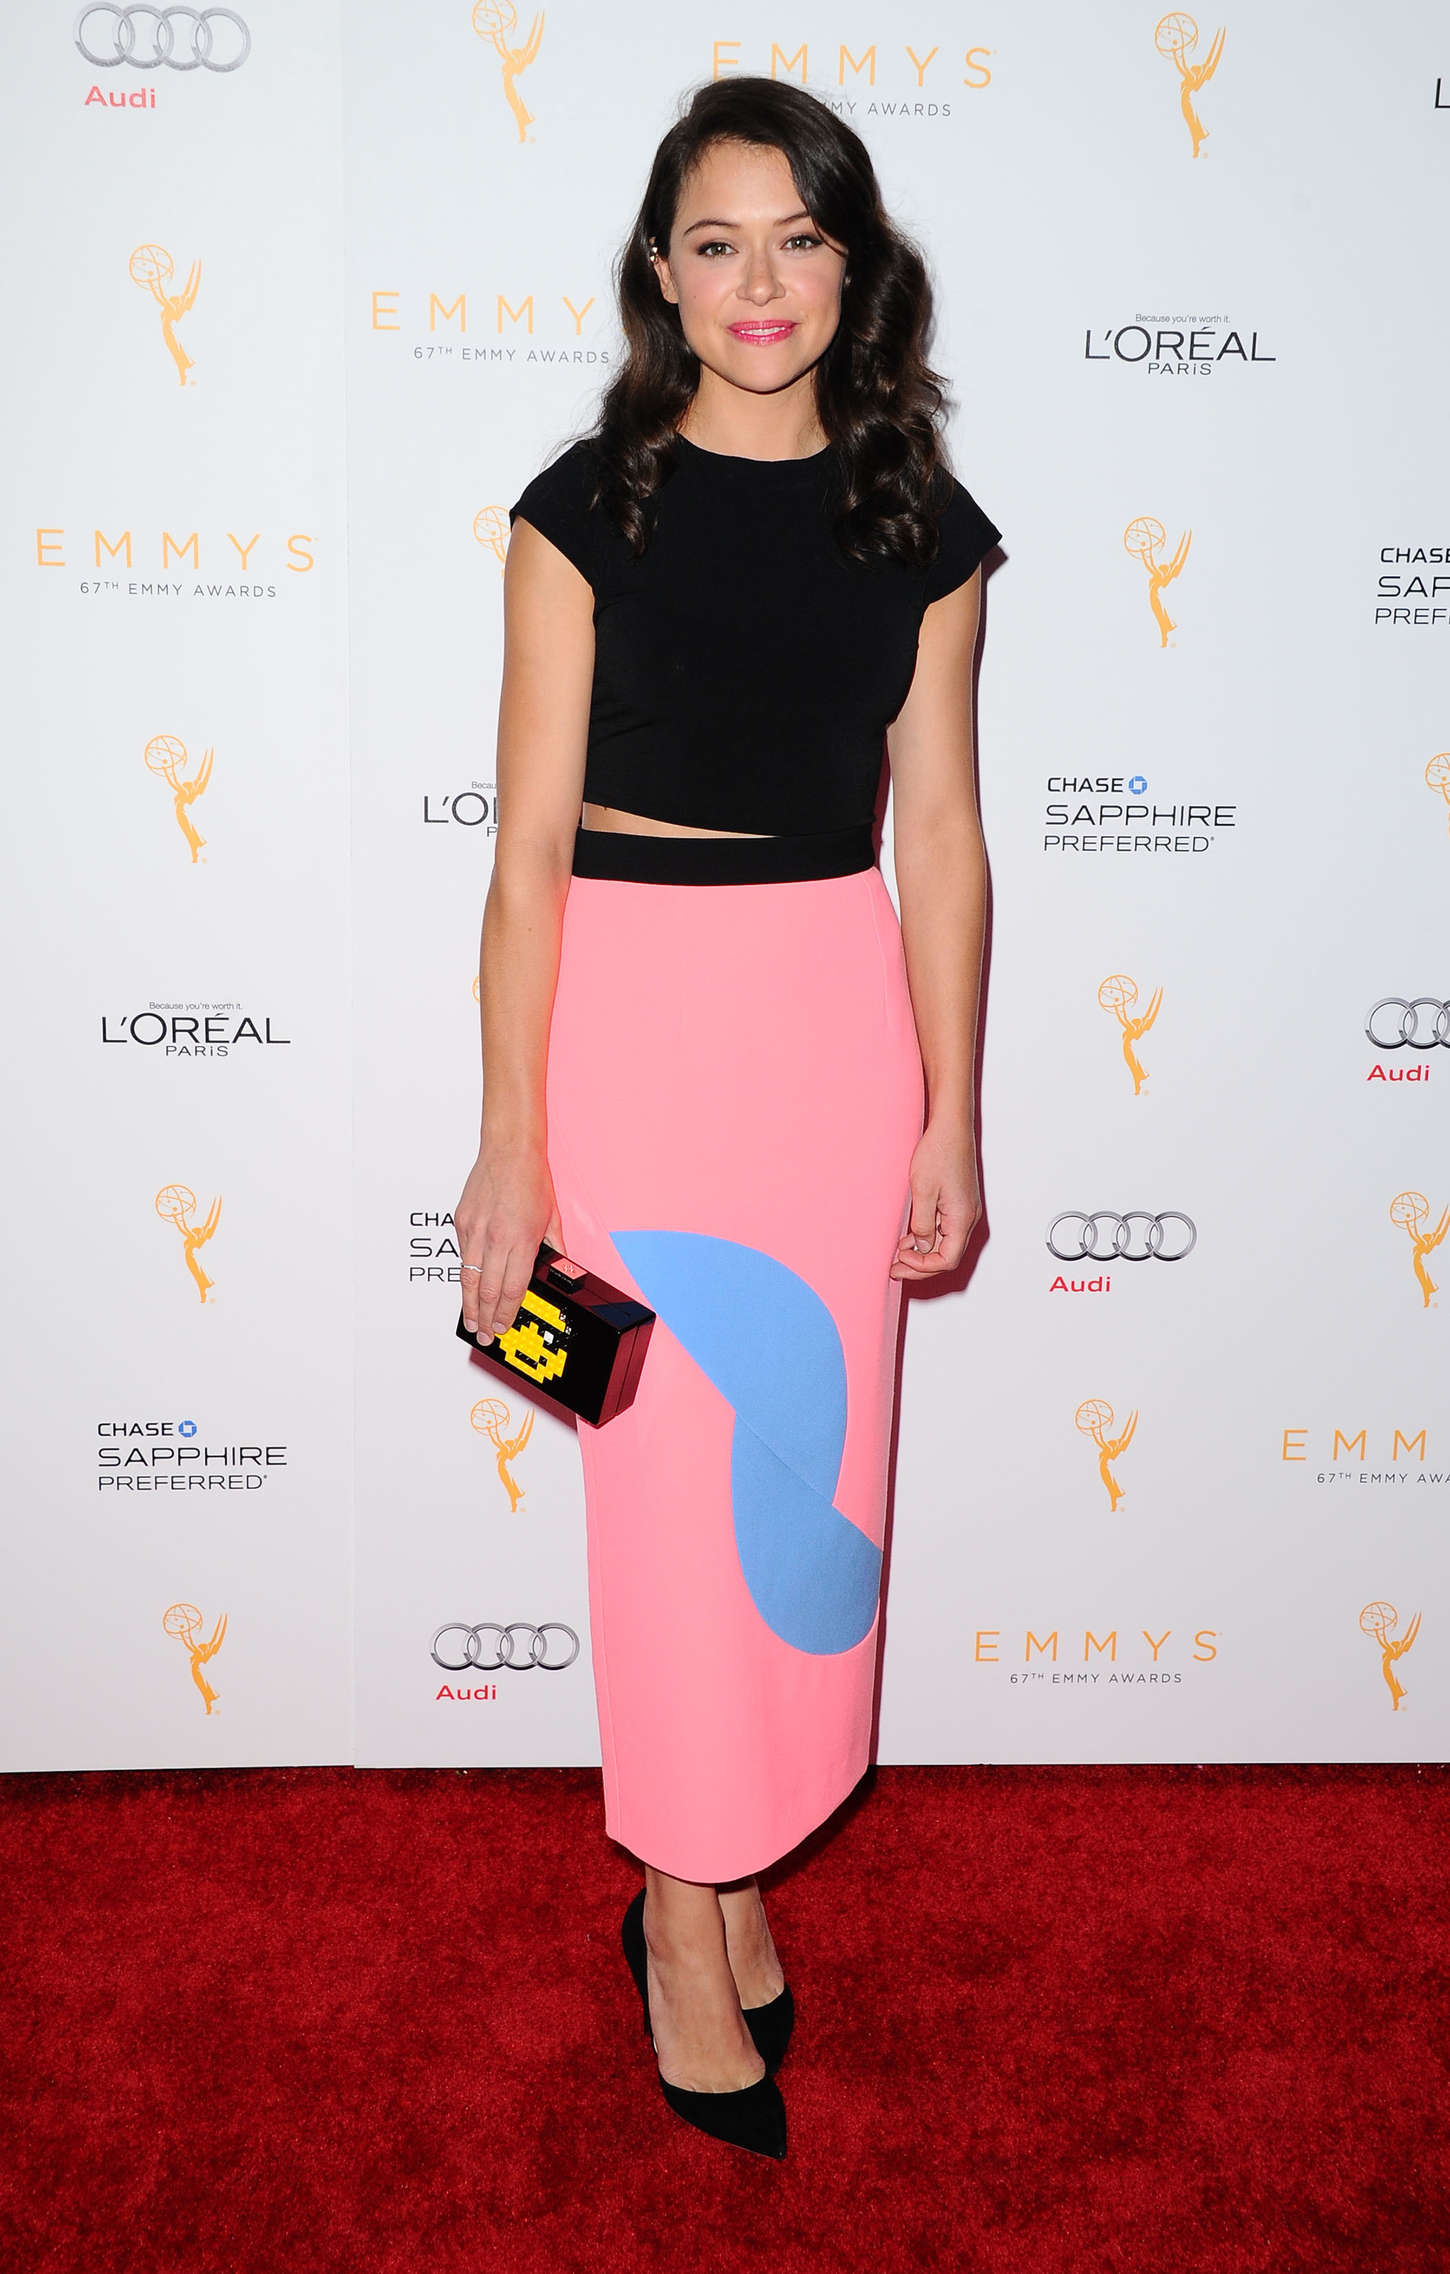 Tatiana Maslany Emmy Awards Performers Nominee in Beverly Hills